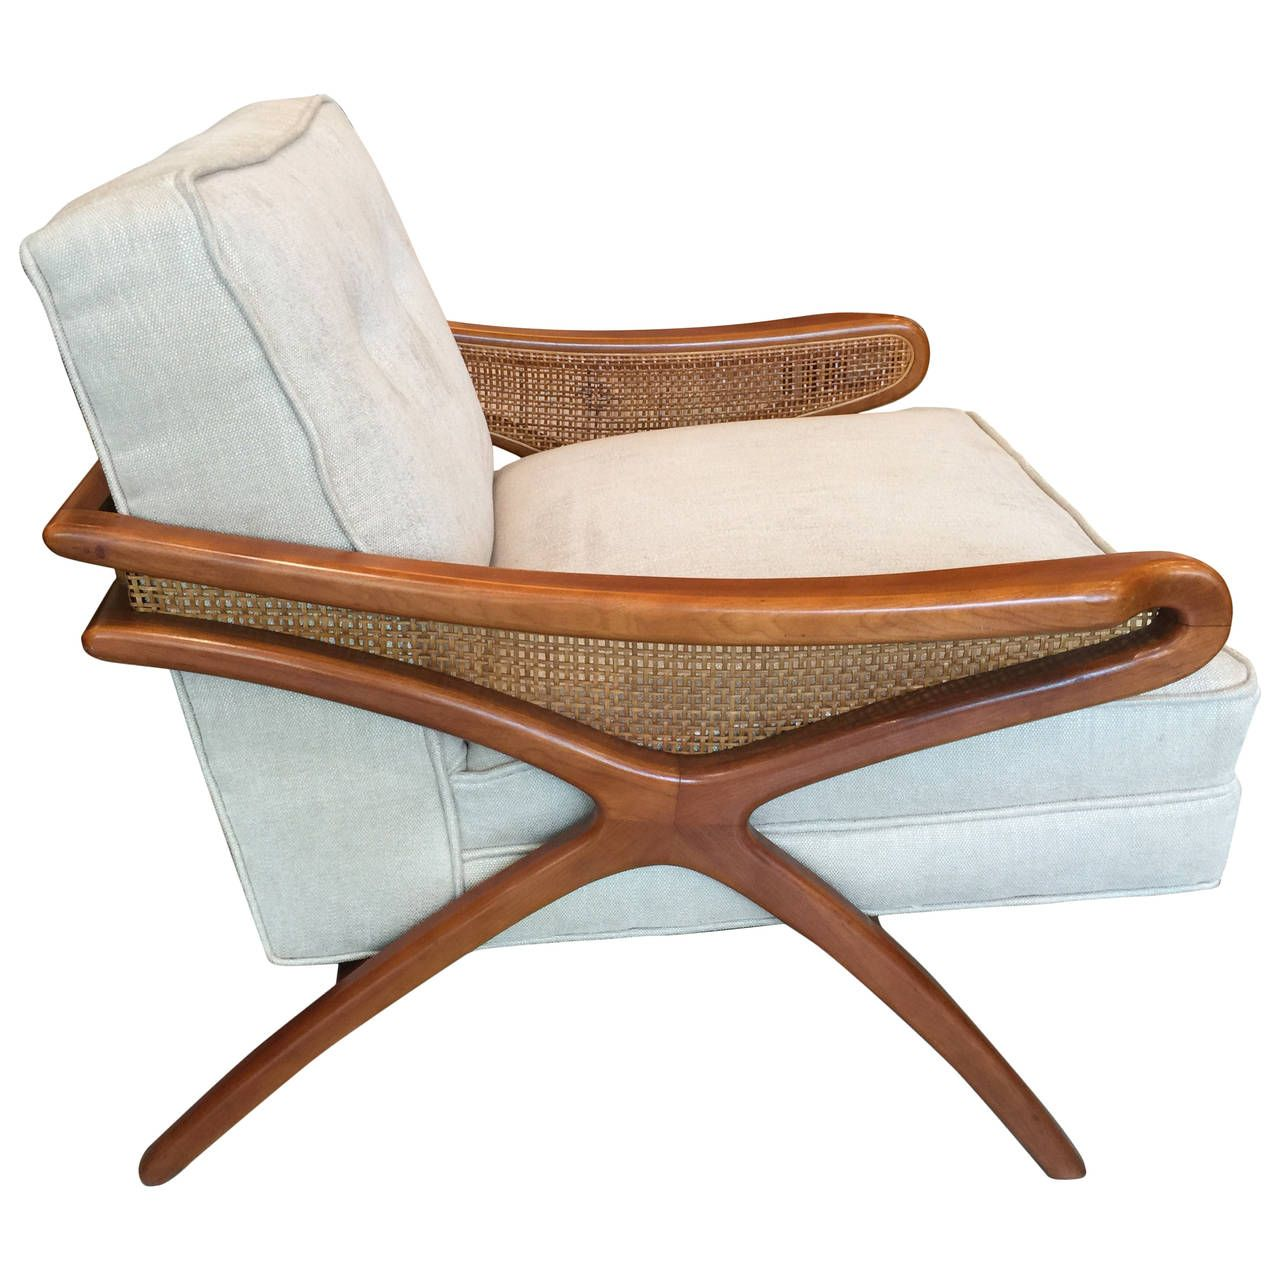 Mid Century Modern Furniture Chair: Pin By Patty Smith On Decor: Mid Century Modern